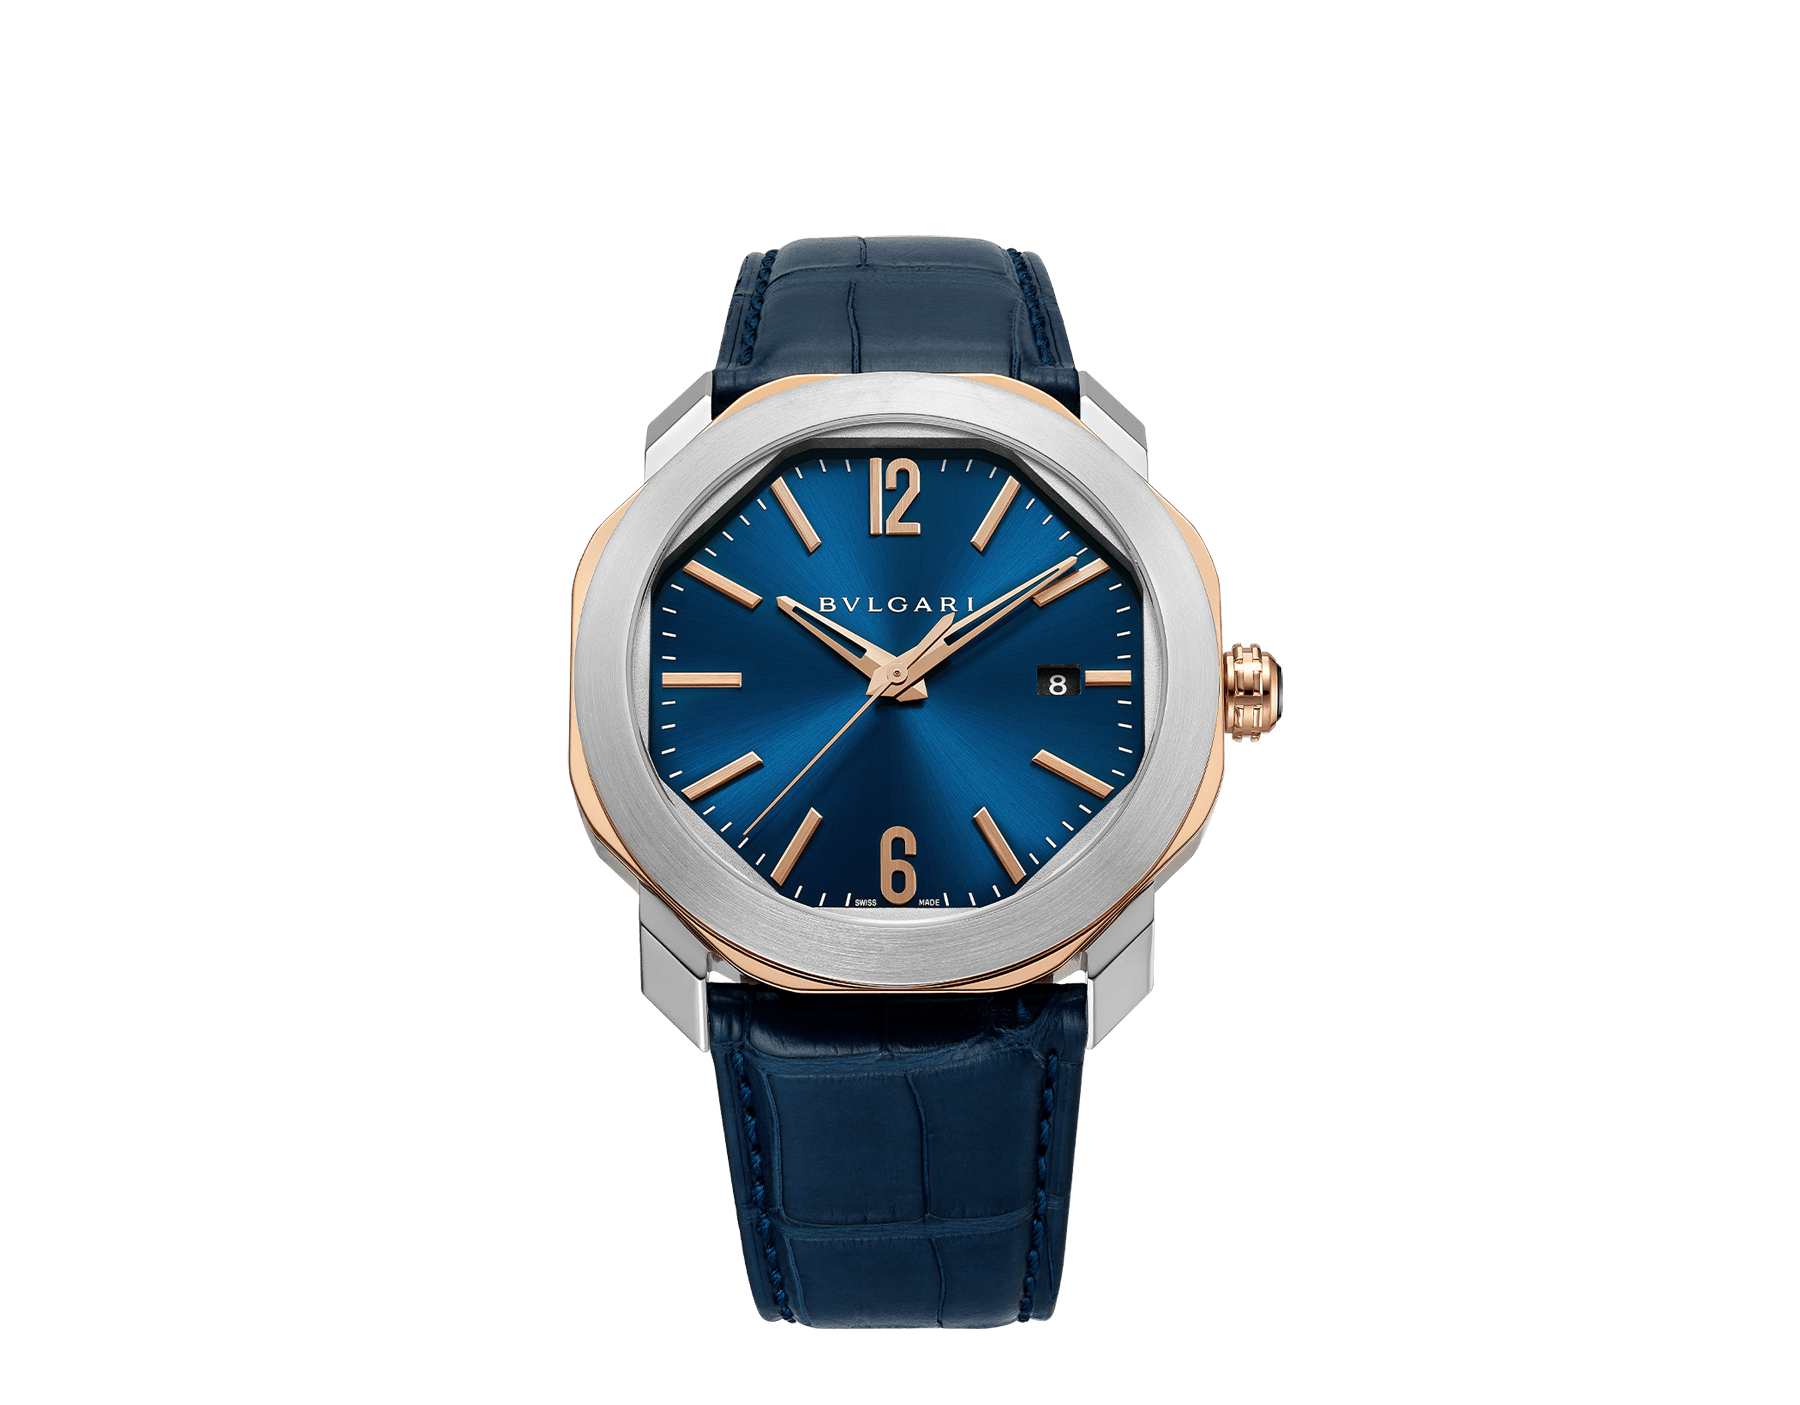 Octo Roma watch with mechanical manufacture movement, automatic winding, stainless steel and 18 kt rose gold case, blue dial and blue alligator bracelet. Water resistant up to 50 metres 103205 image 1